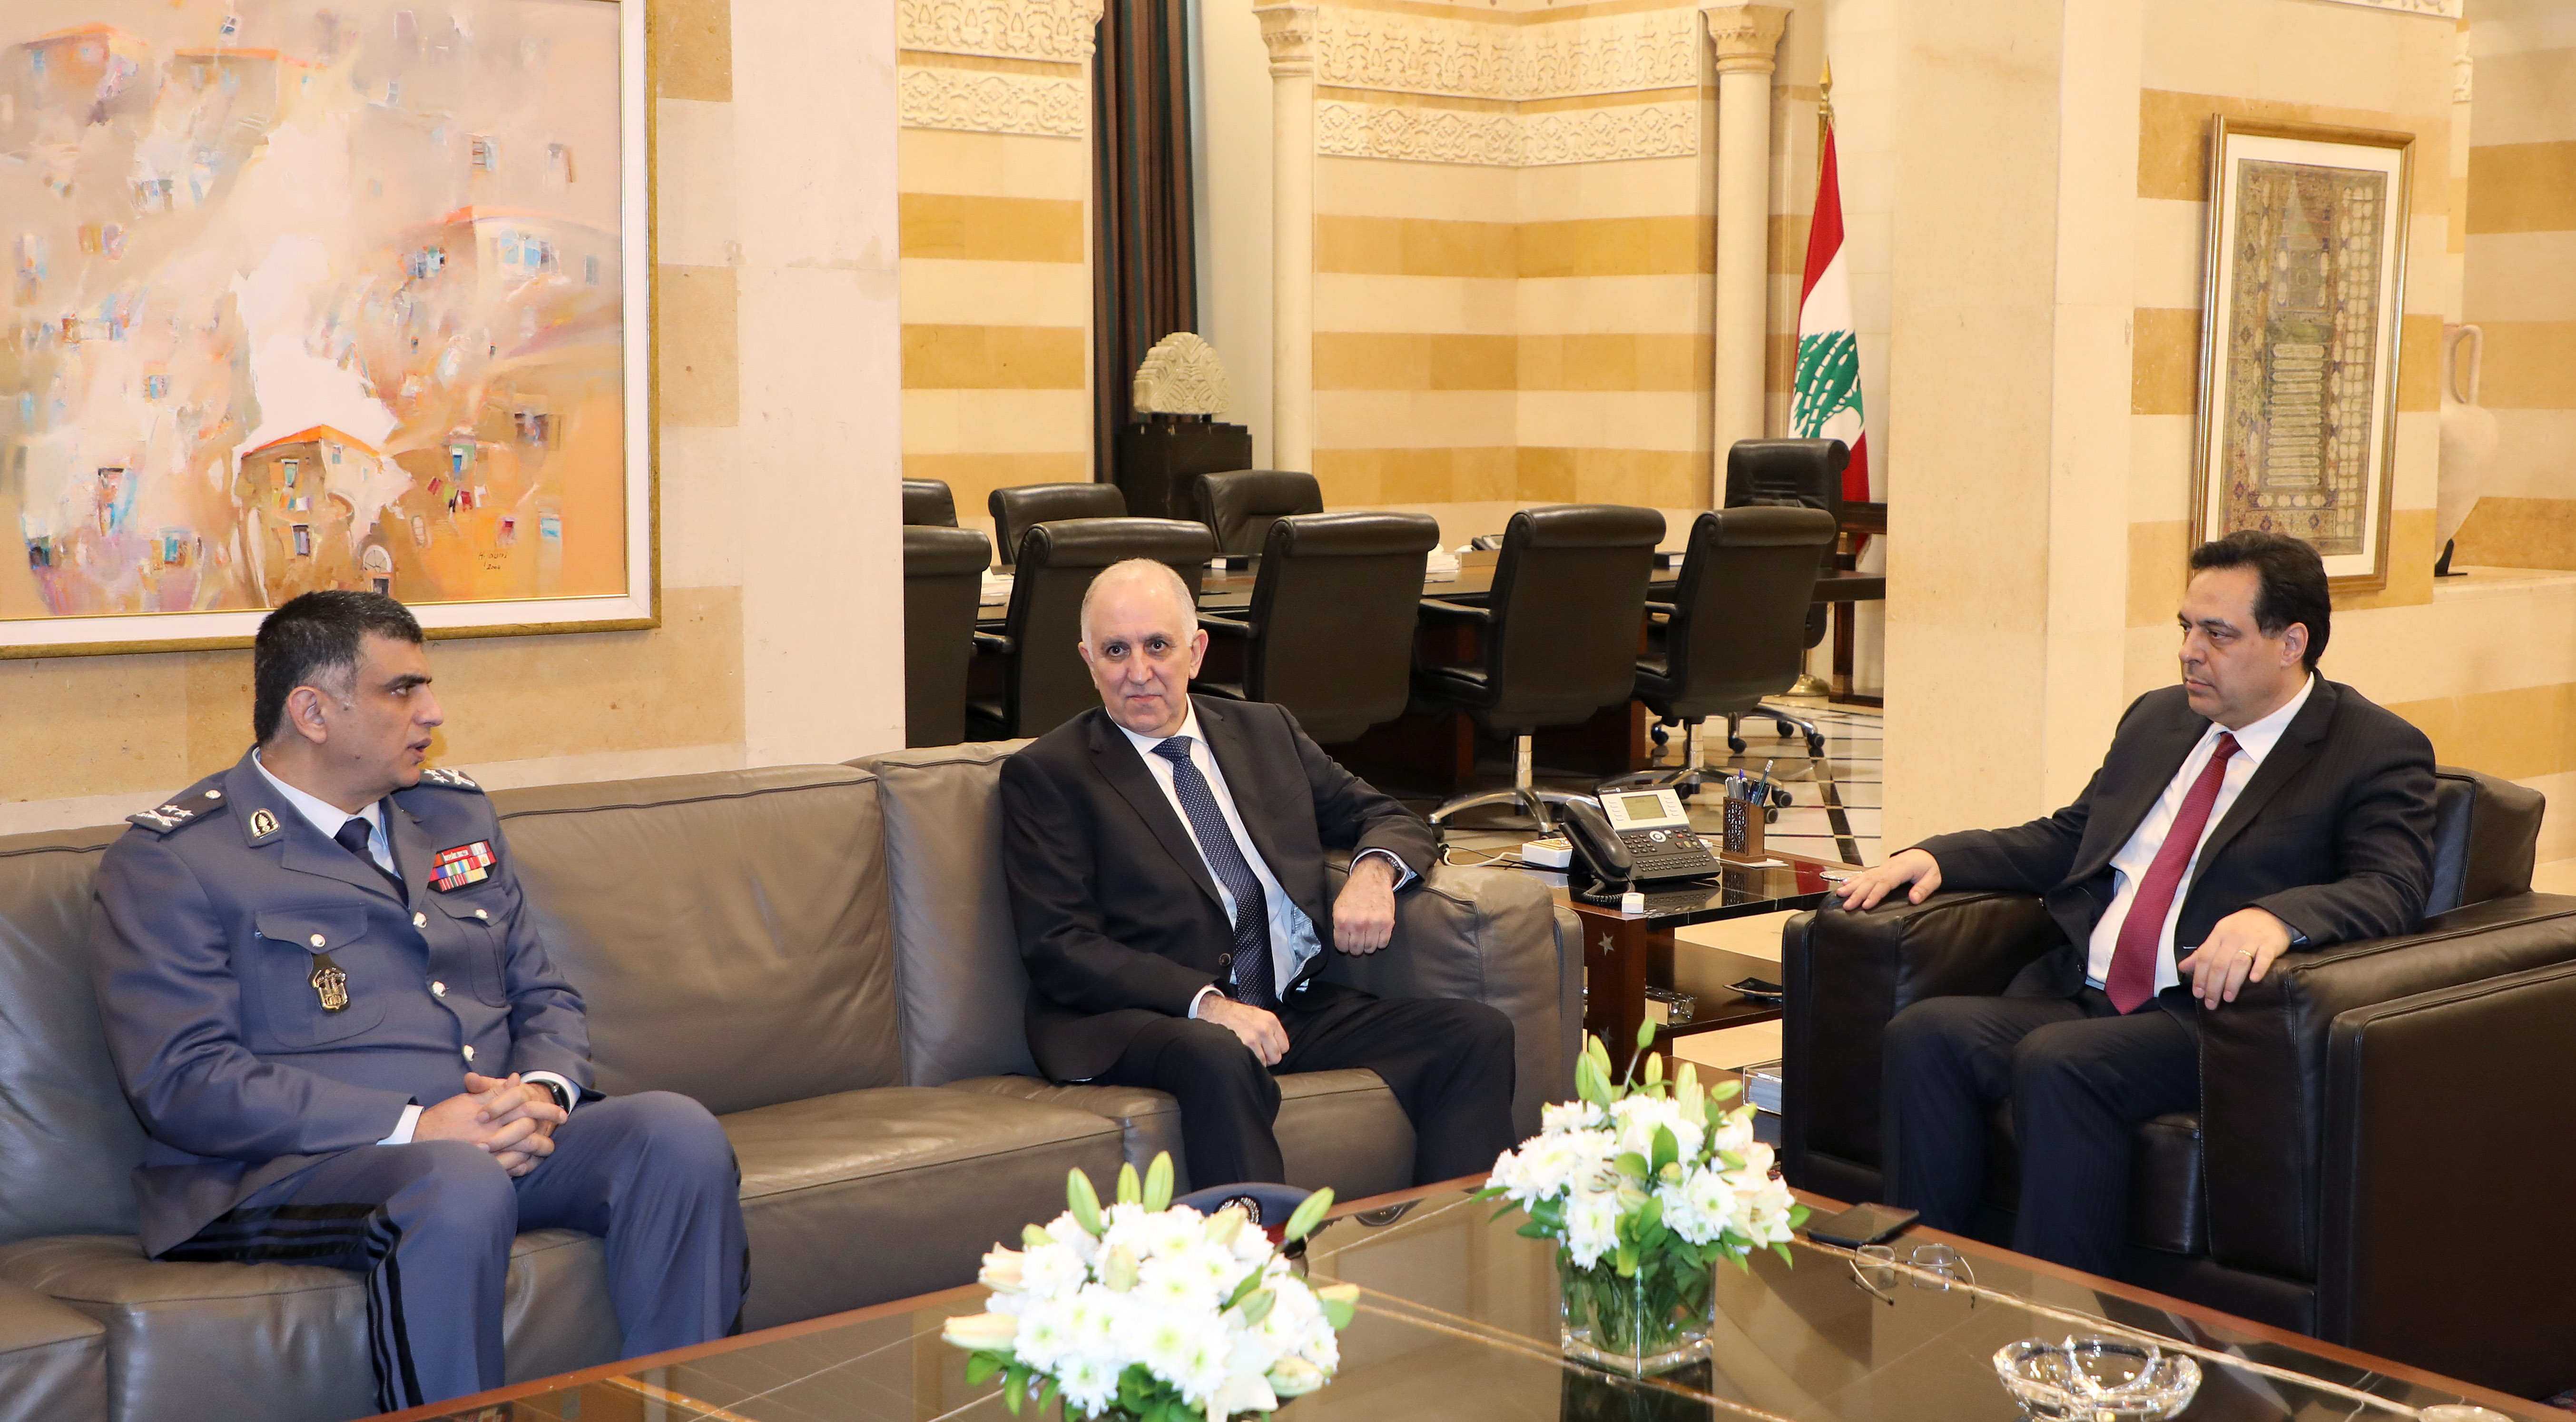 Pr Minister Hassan Diab meets Minister Mouhamad Fehmi & General Imad Outhman